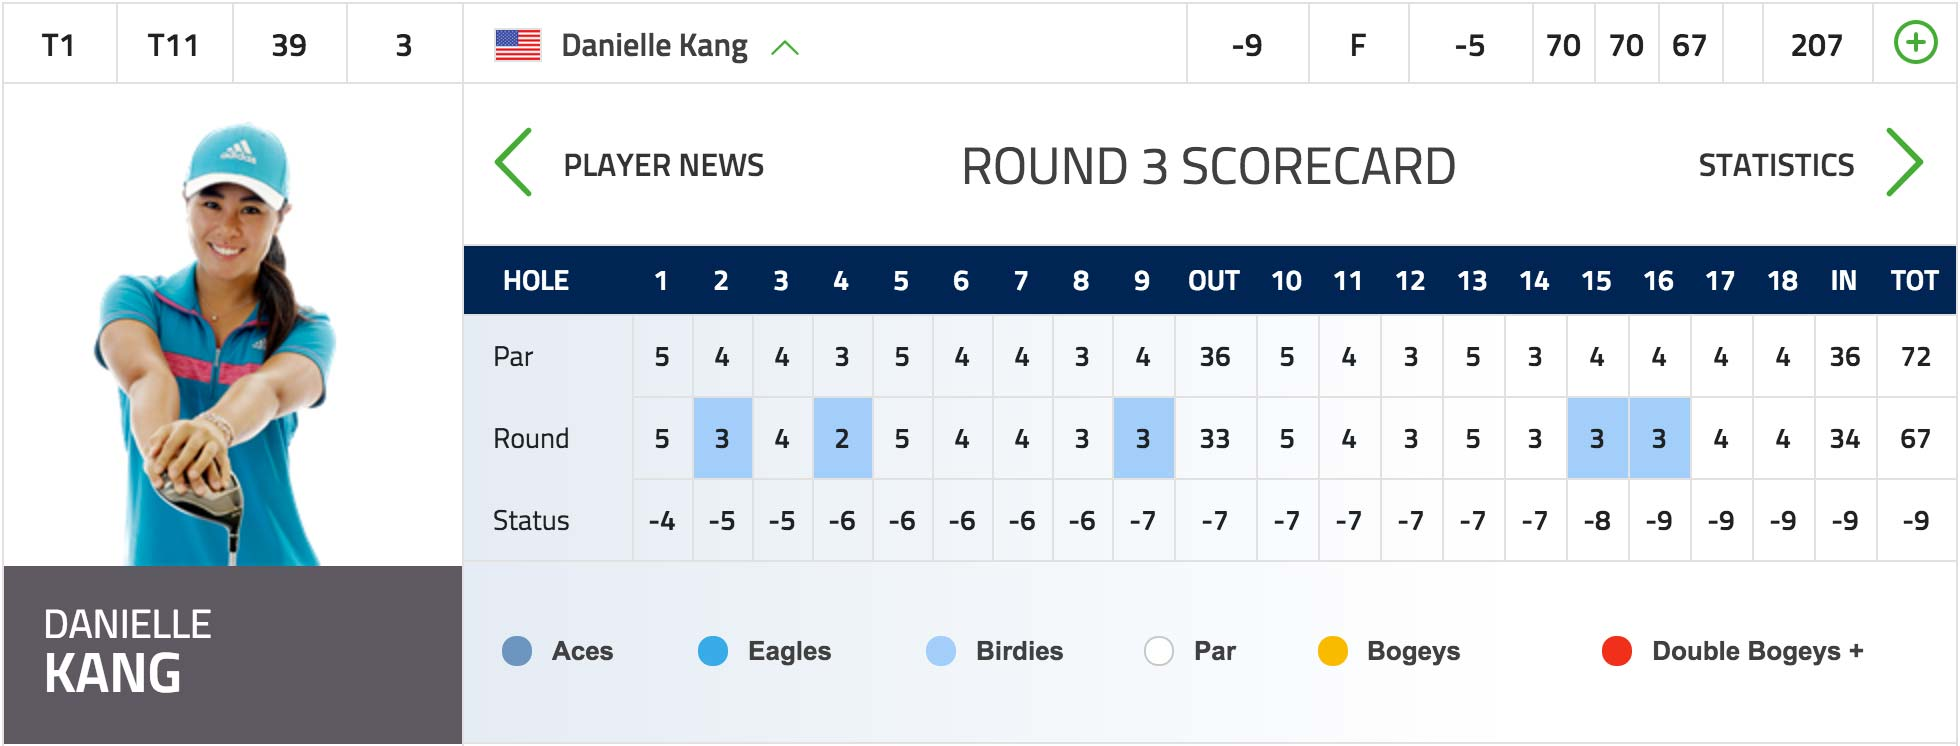 Danielle Kang is tied for the lead heading into the final round of the ISPS Handa